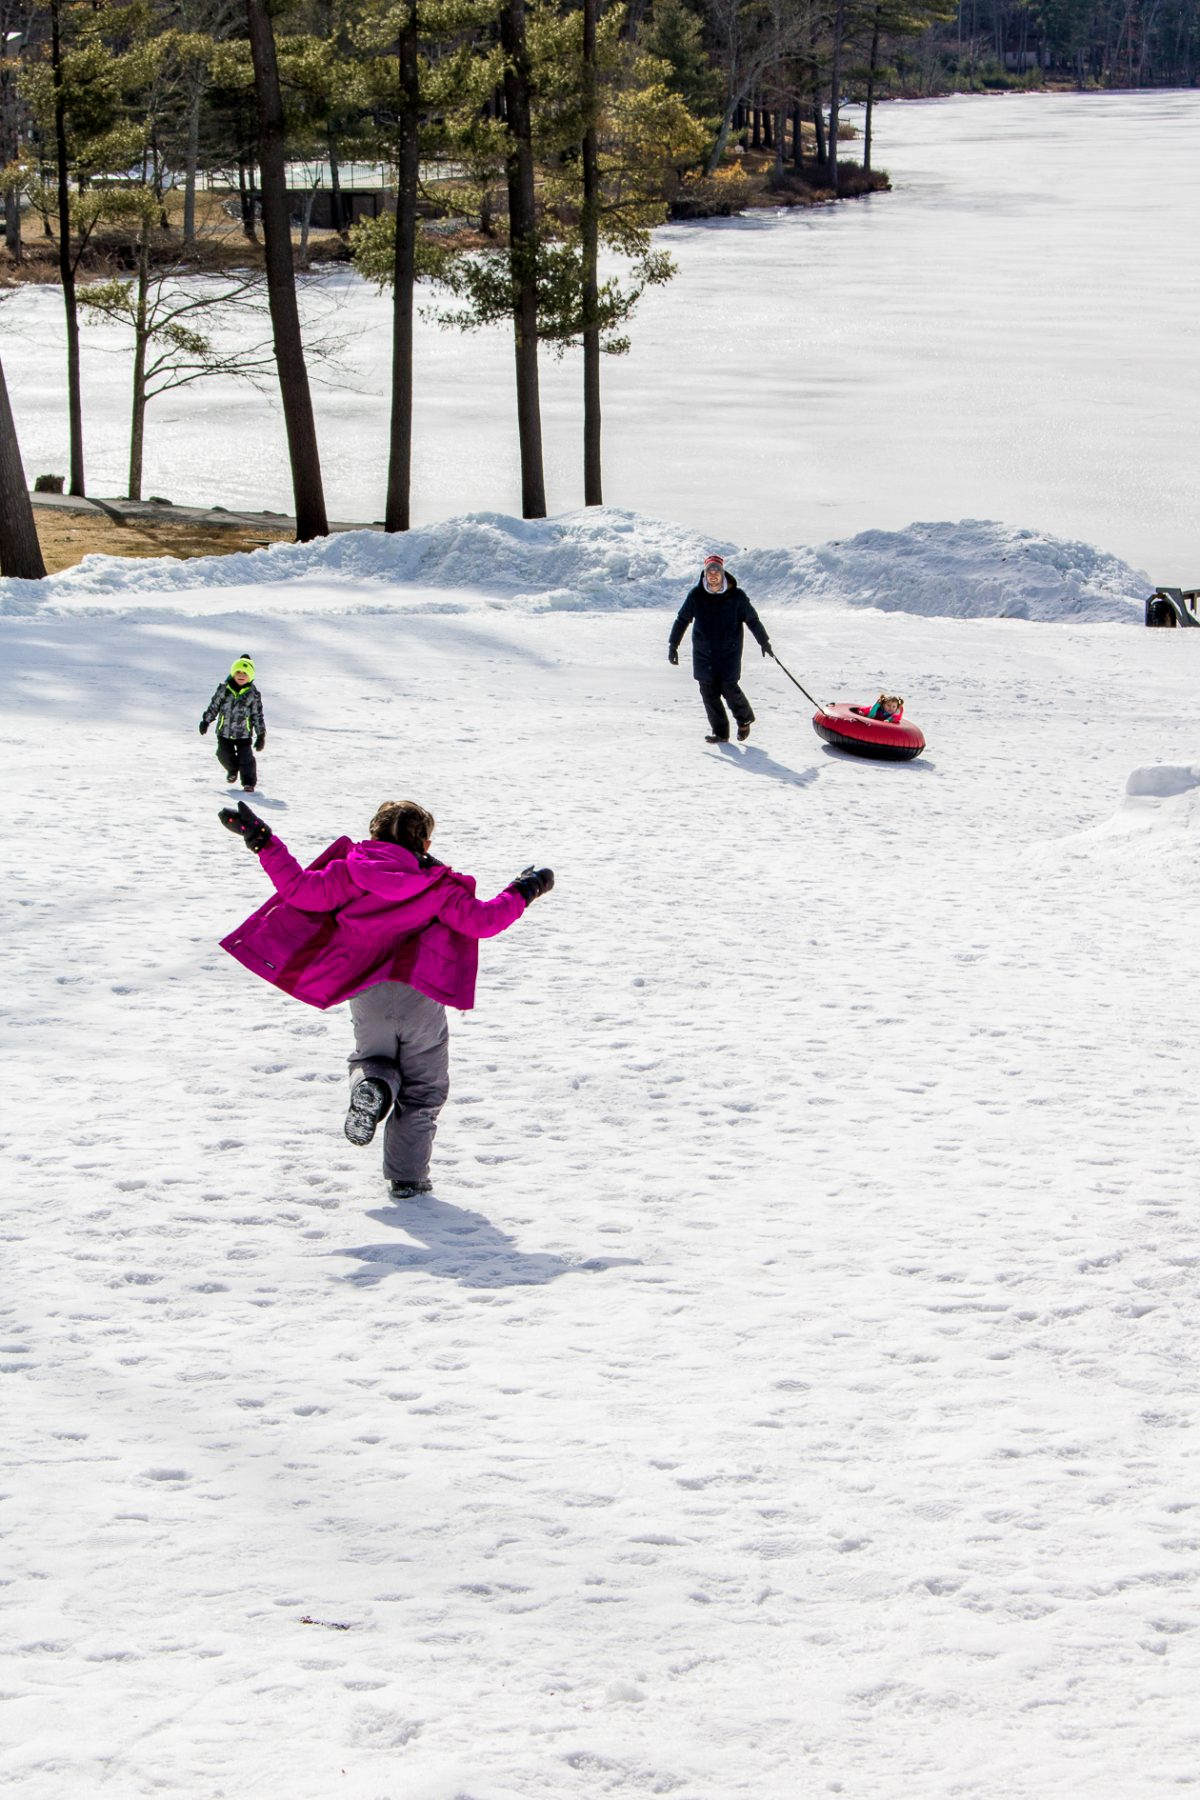 Travel // Woodloch Pines Resort, the Best All-Inclusive Family Resort